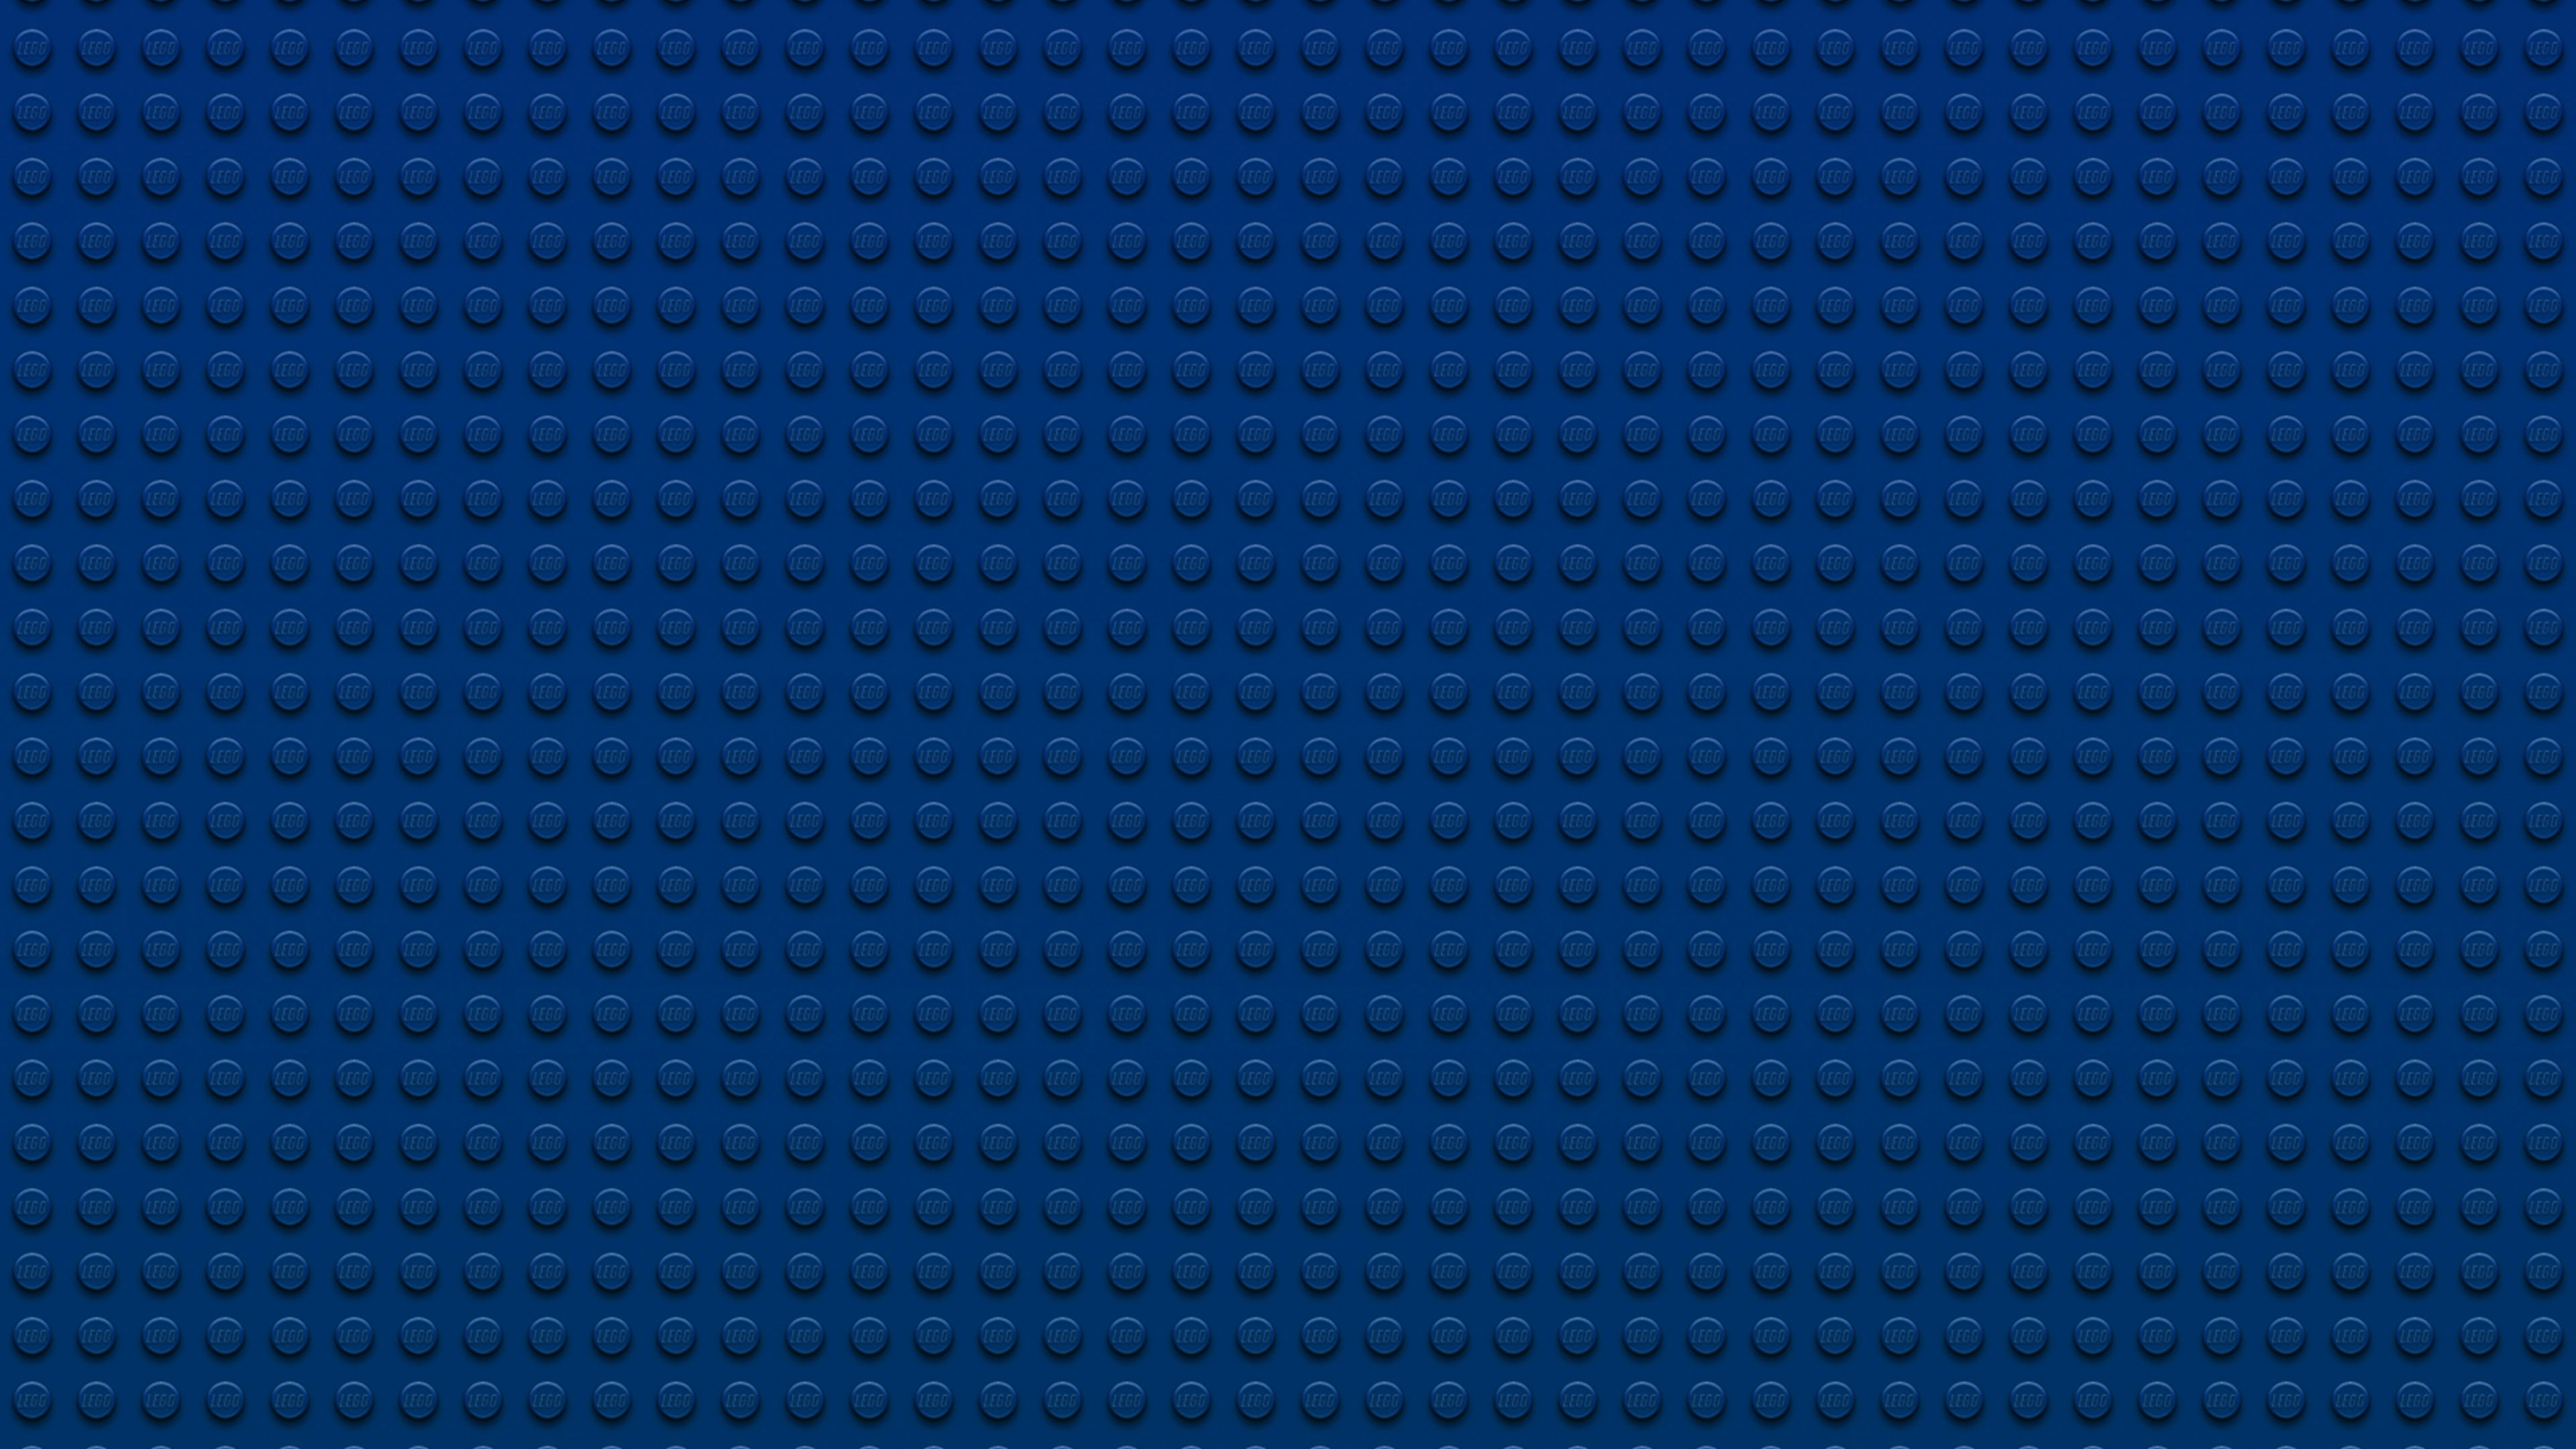 Fall Wallpaper For Macbook Pro Vf34 Lego Toy Dark Blue Block Pattern Papers Co